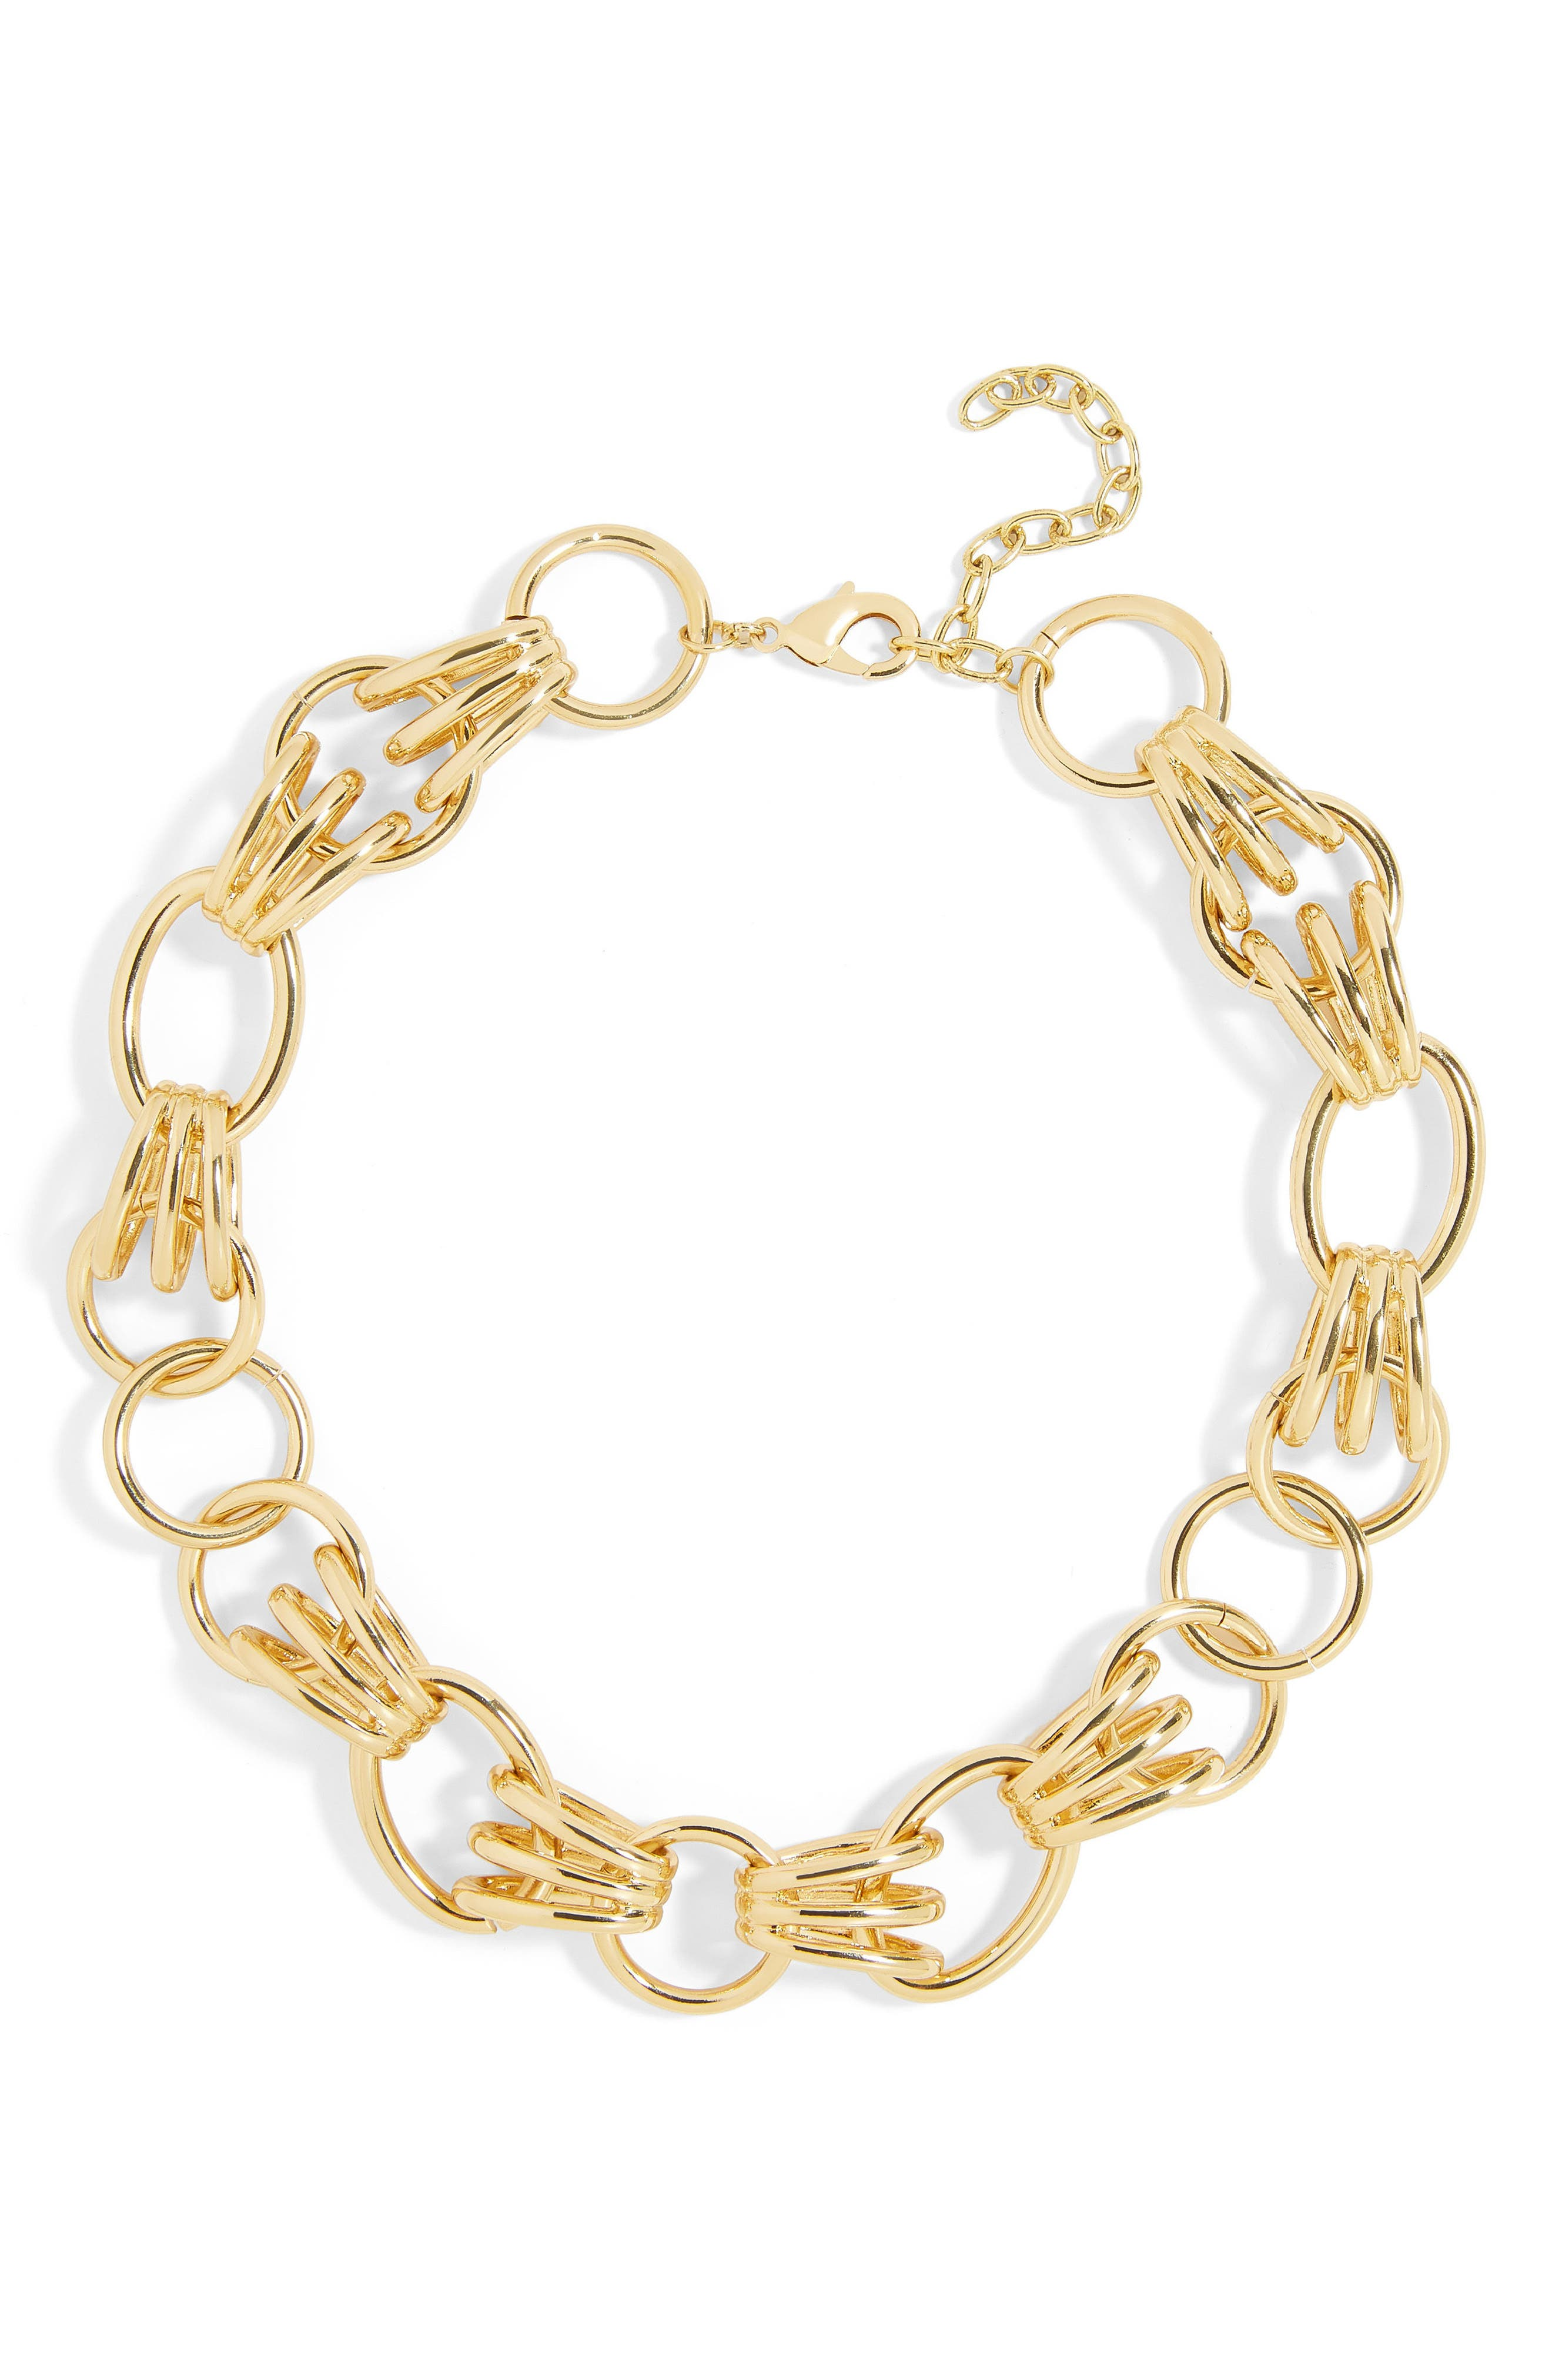 Anitra Statement Necklace,                             Main thumbnail 1, color,                             710